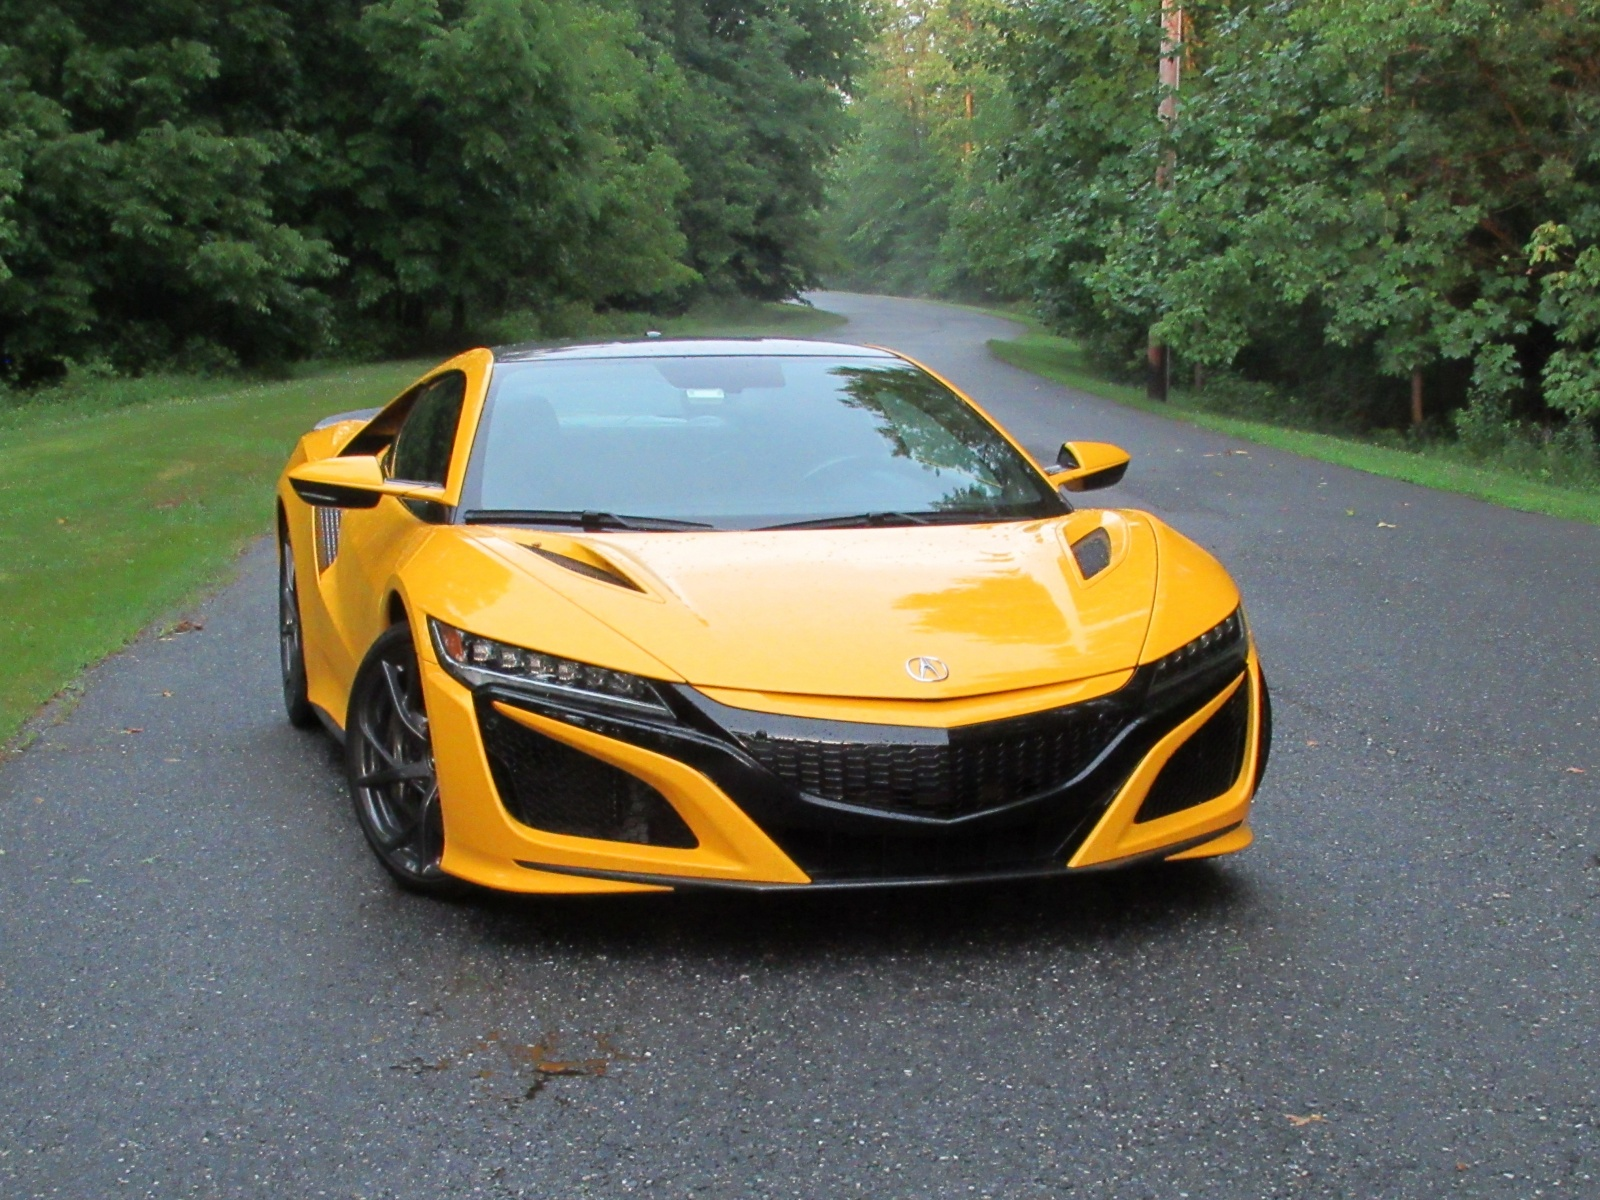 Acura Nsx Driven Review And Impressions